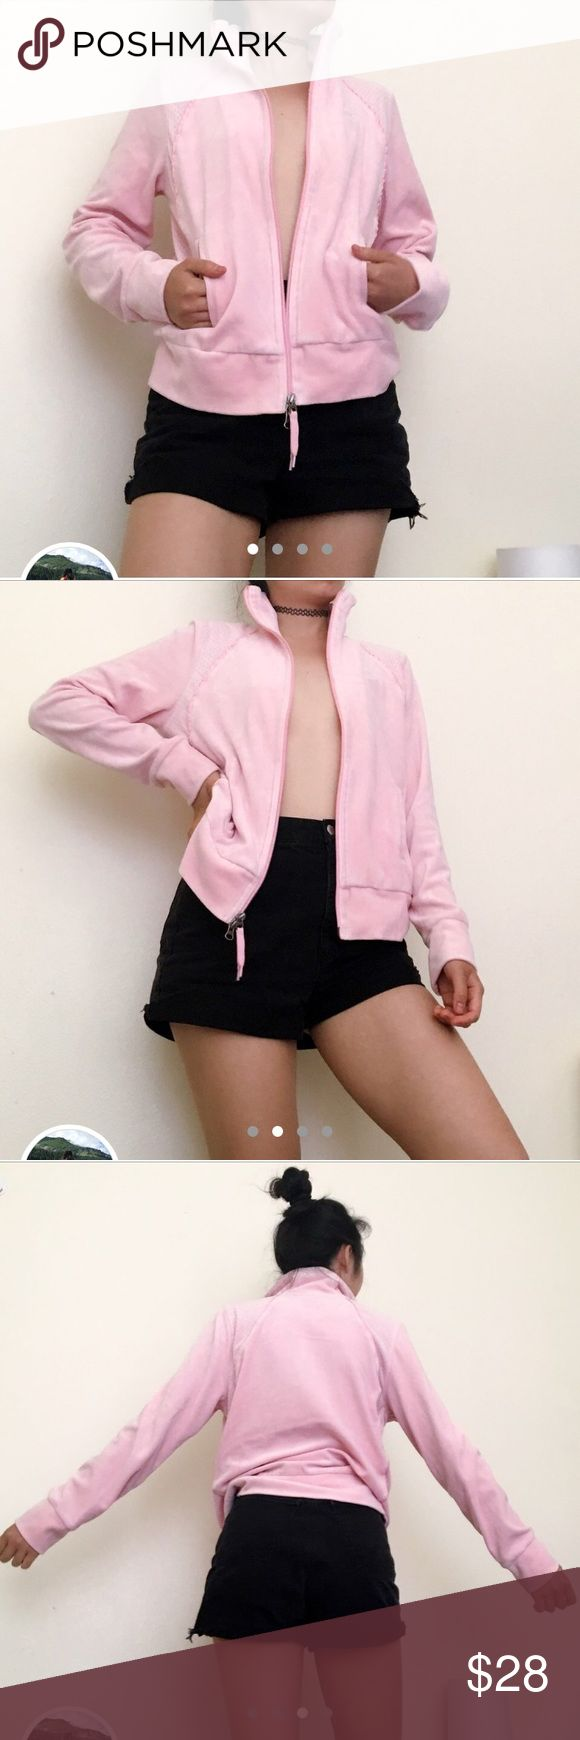 Nike baby pink zip up jacket💗🌸 Nike baby pink zip up jacket💗🌸 Size M. I am in love with this soft color😊 Pair with a high waist pleated white skirt, knee high lace socks and mary janes for a good girl look🌷 #volleyball #skirt #sporty #90s #vintage #beach #summer#fall #lightjacket #jacket #hoodie #Y2K #retro #Nike#lolita #girly #doll #babydoll #angelic #angel #streetlook #original #atheletic #athleisure #vintage #athletic #hiking #running #babe #skorts #mockskirt #retro #depop…